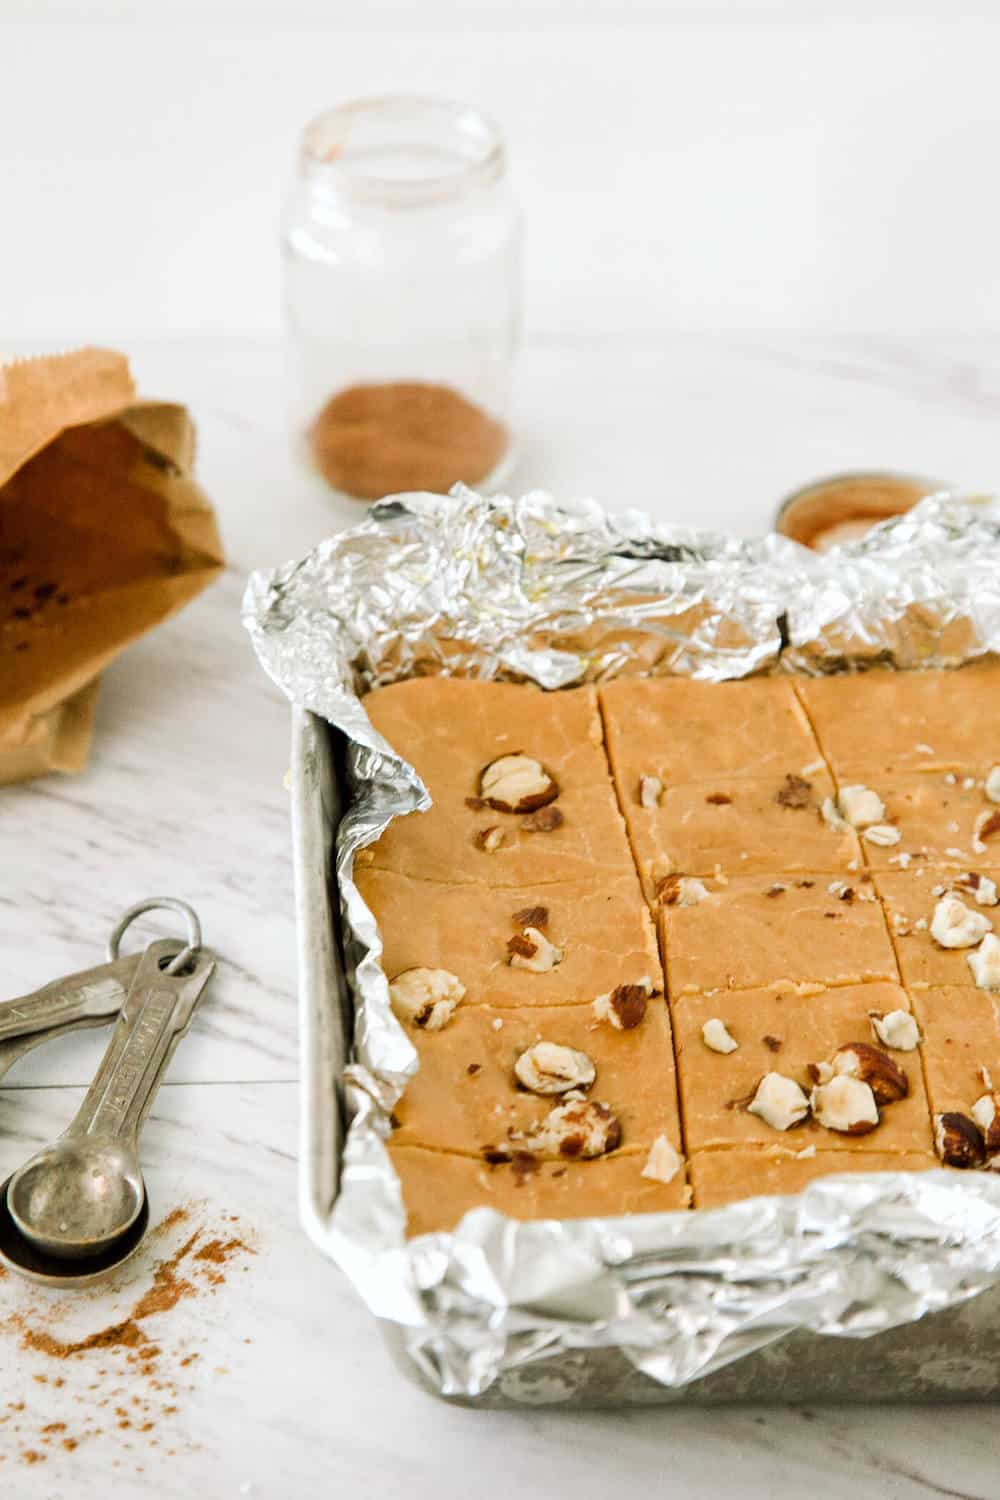 While sweet pies tend to get most of the attention during pumpkin season, another delicious way to use this ingredient is to make pumpkin fudge!